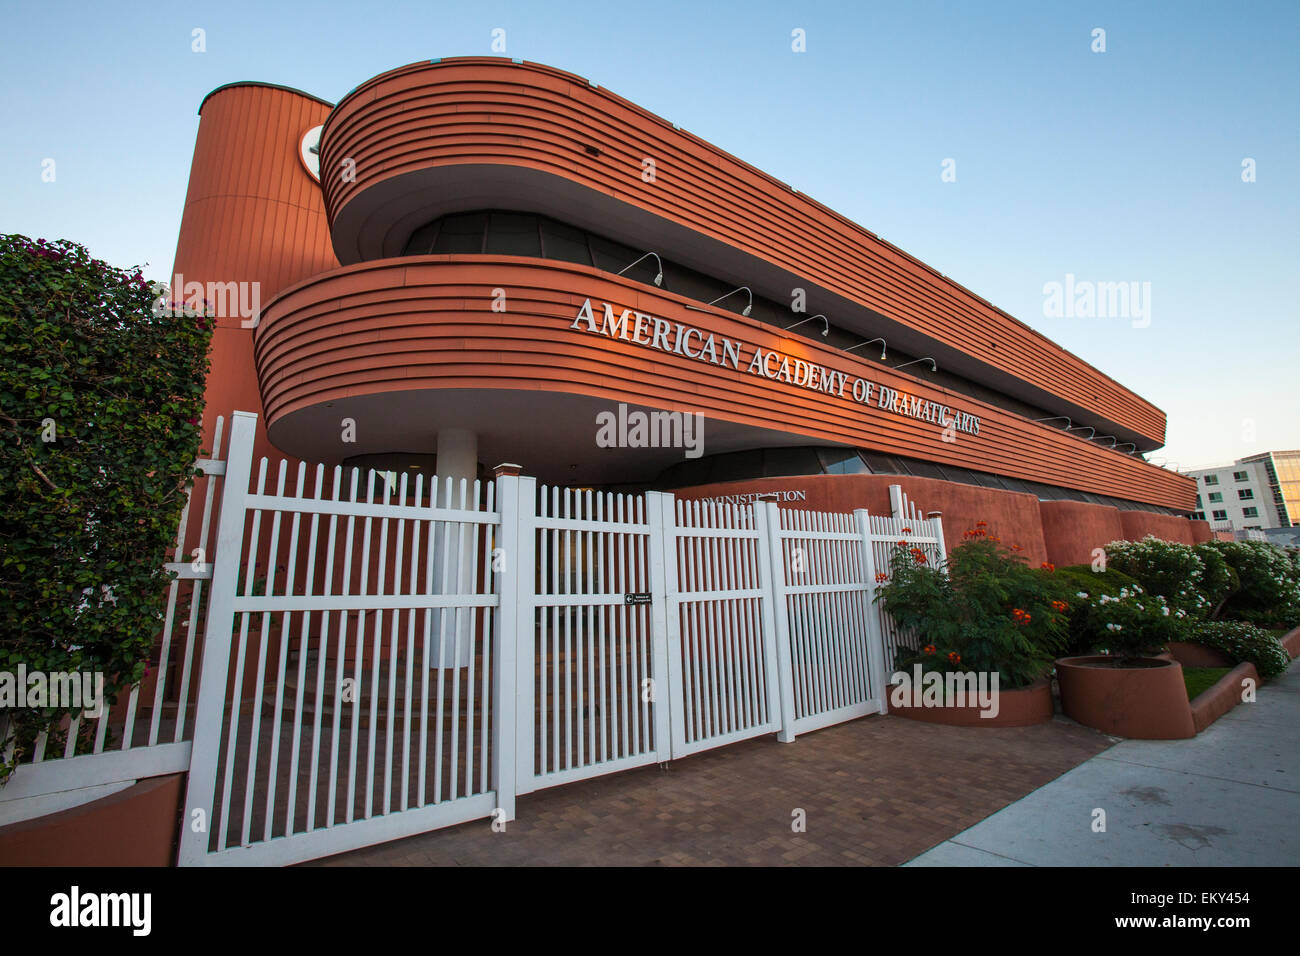 American Academy of Dramatic Arts, Hollywood, California, USA Stock Photo